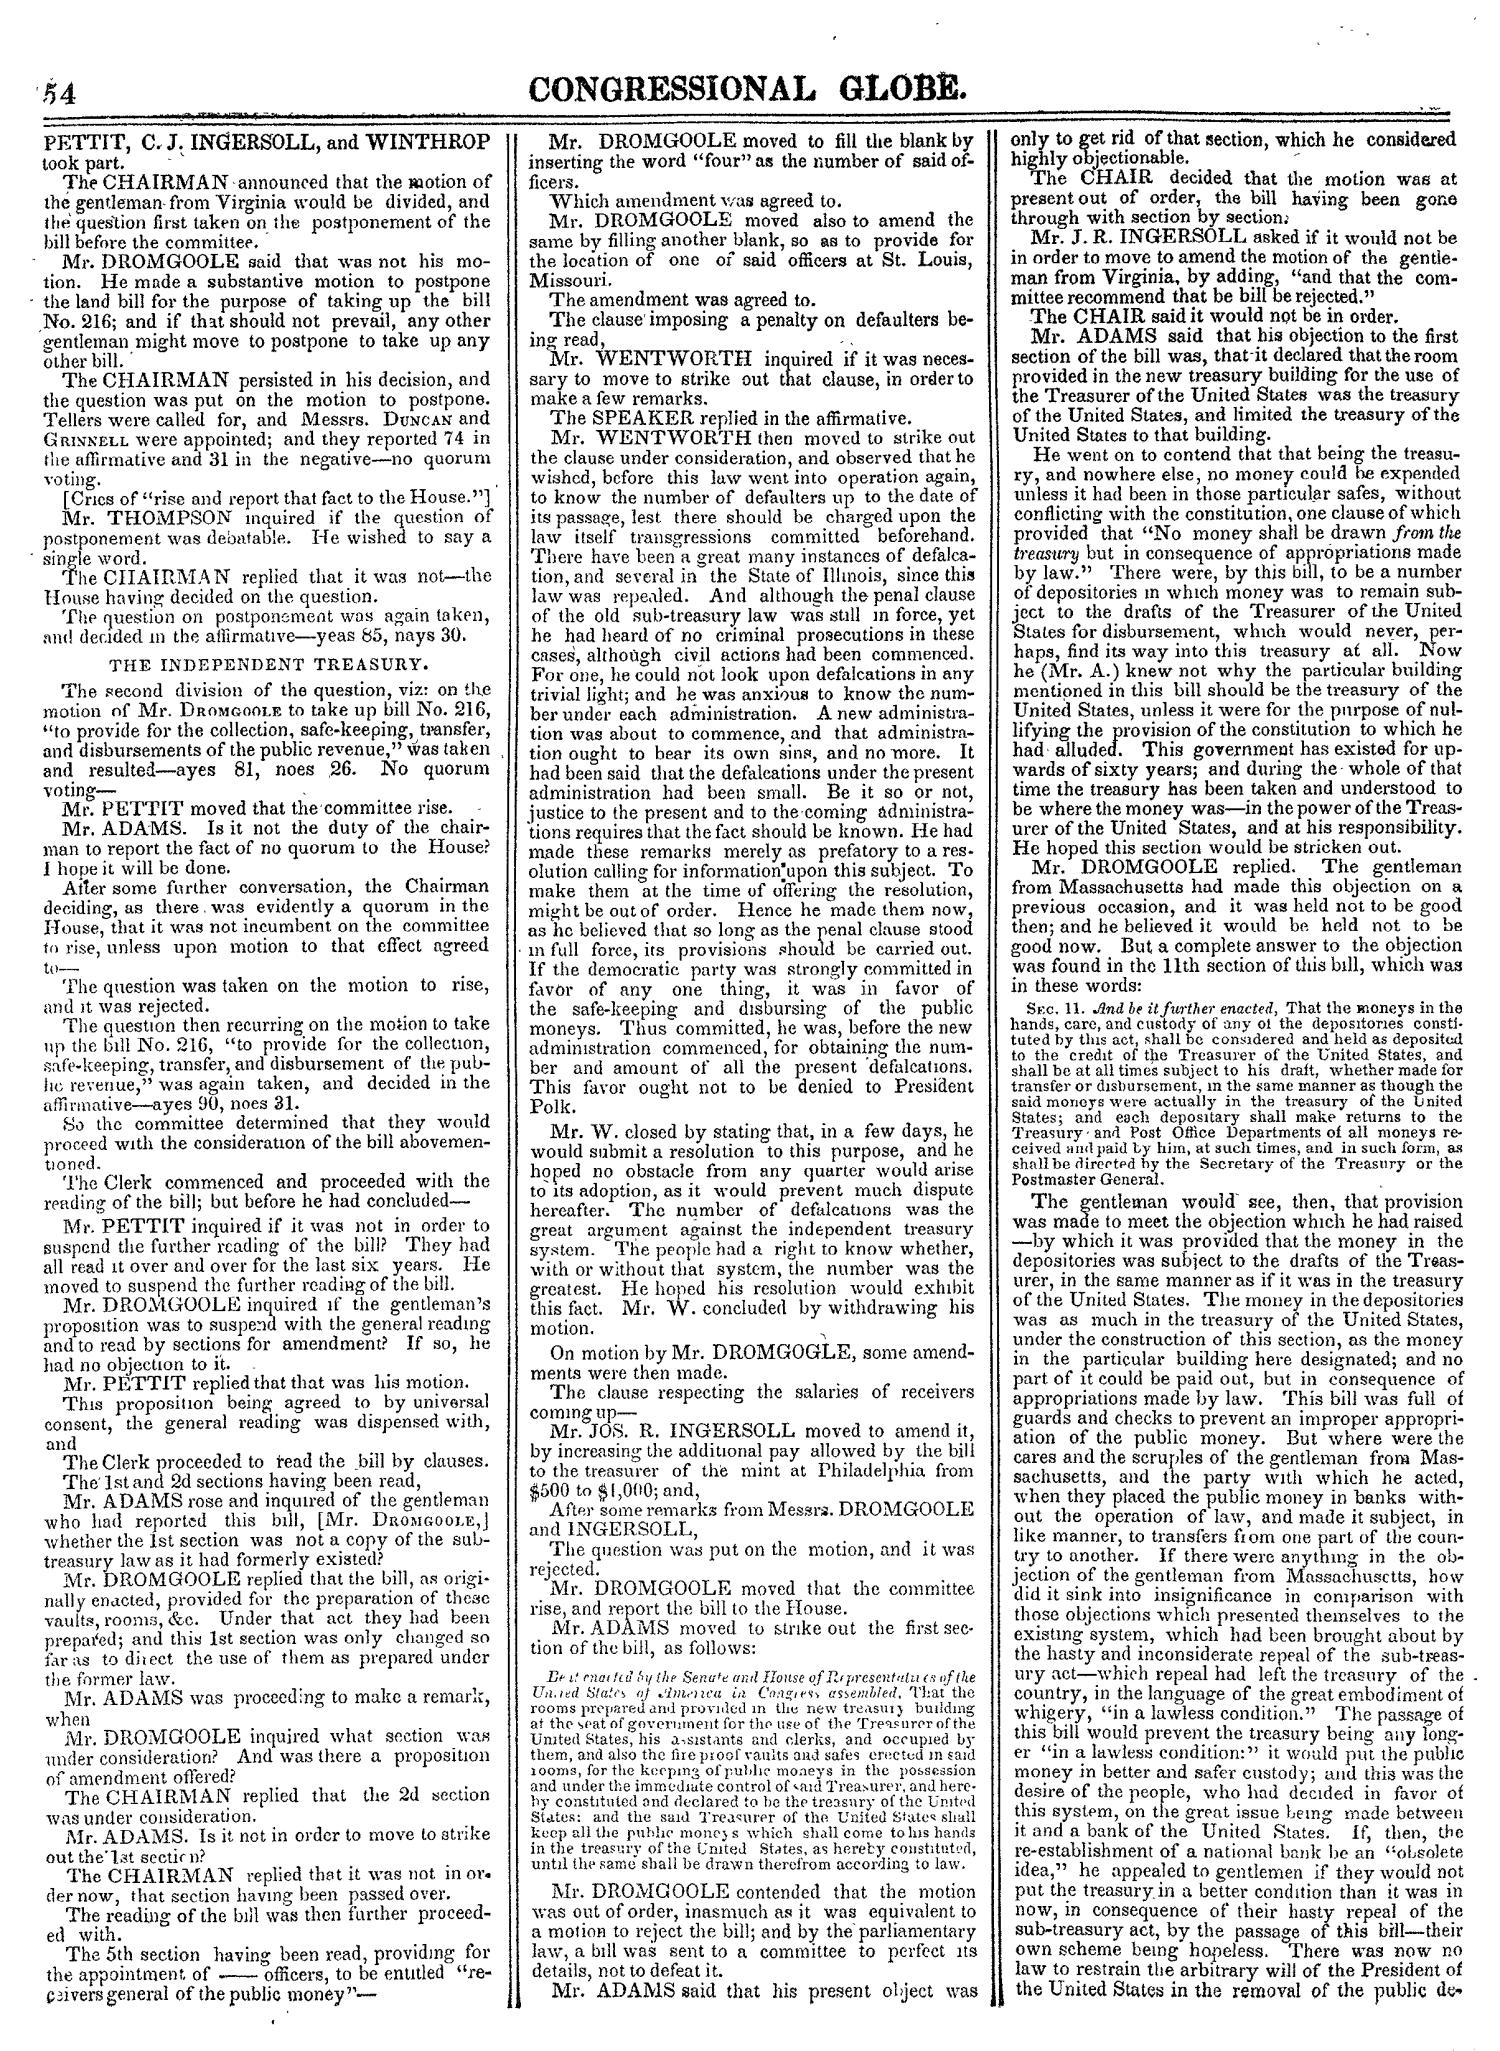 The Congressional Globe, Volume 14: Twenty-Eighth Congress, Second Session                                                                                                      54